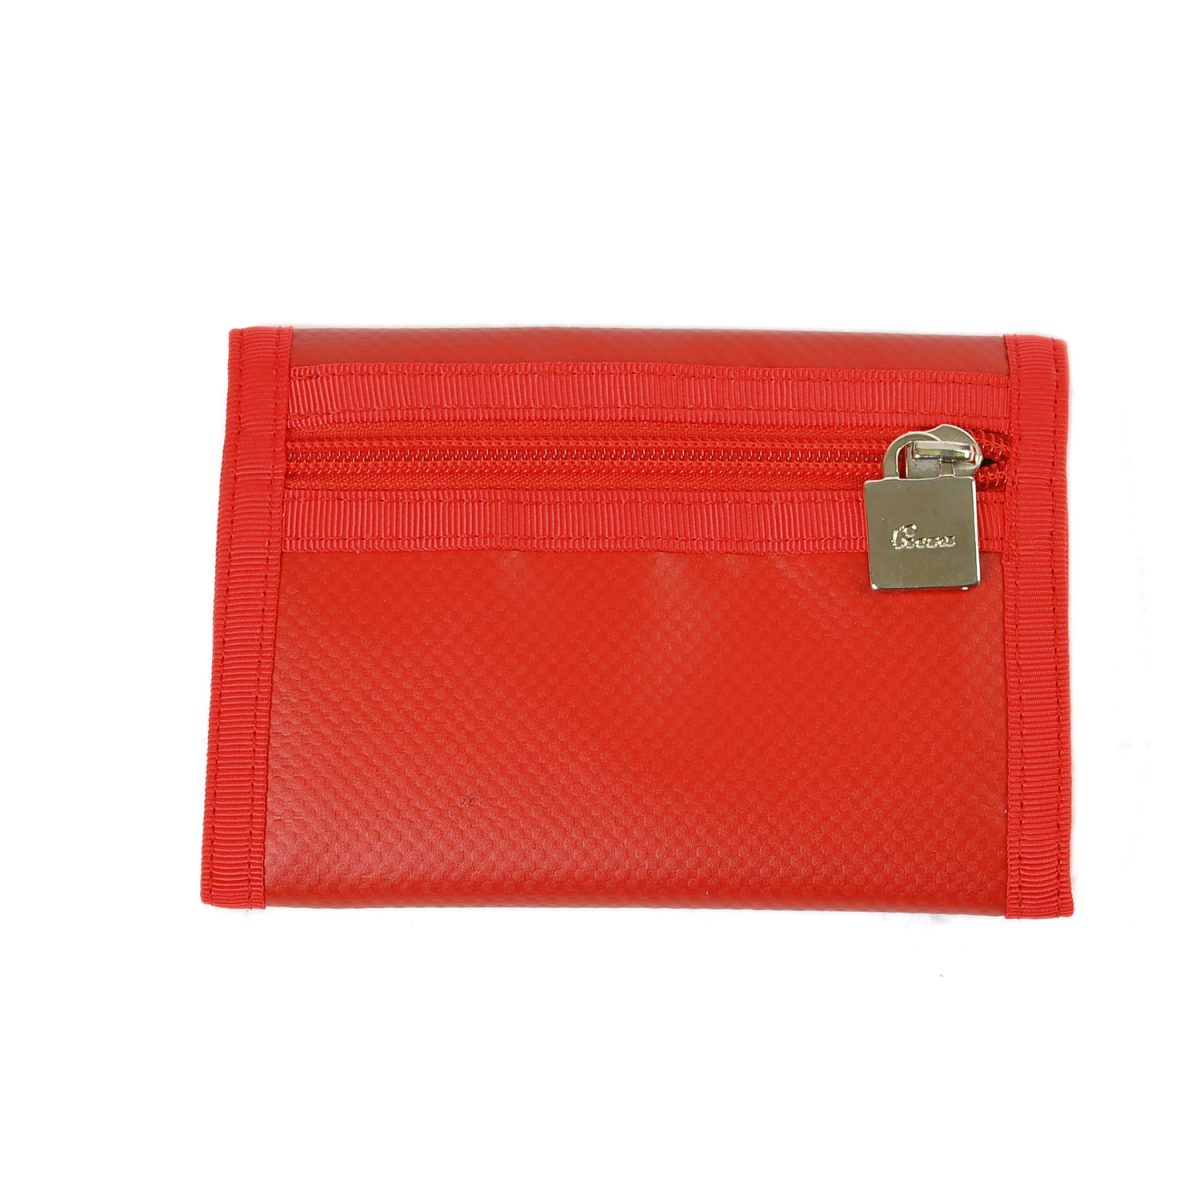 Tisza shoes - Purses - Red